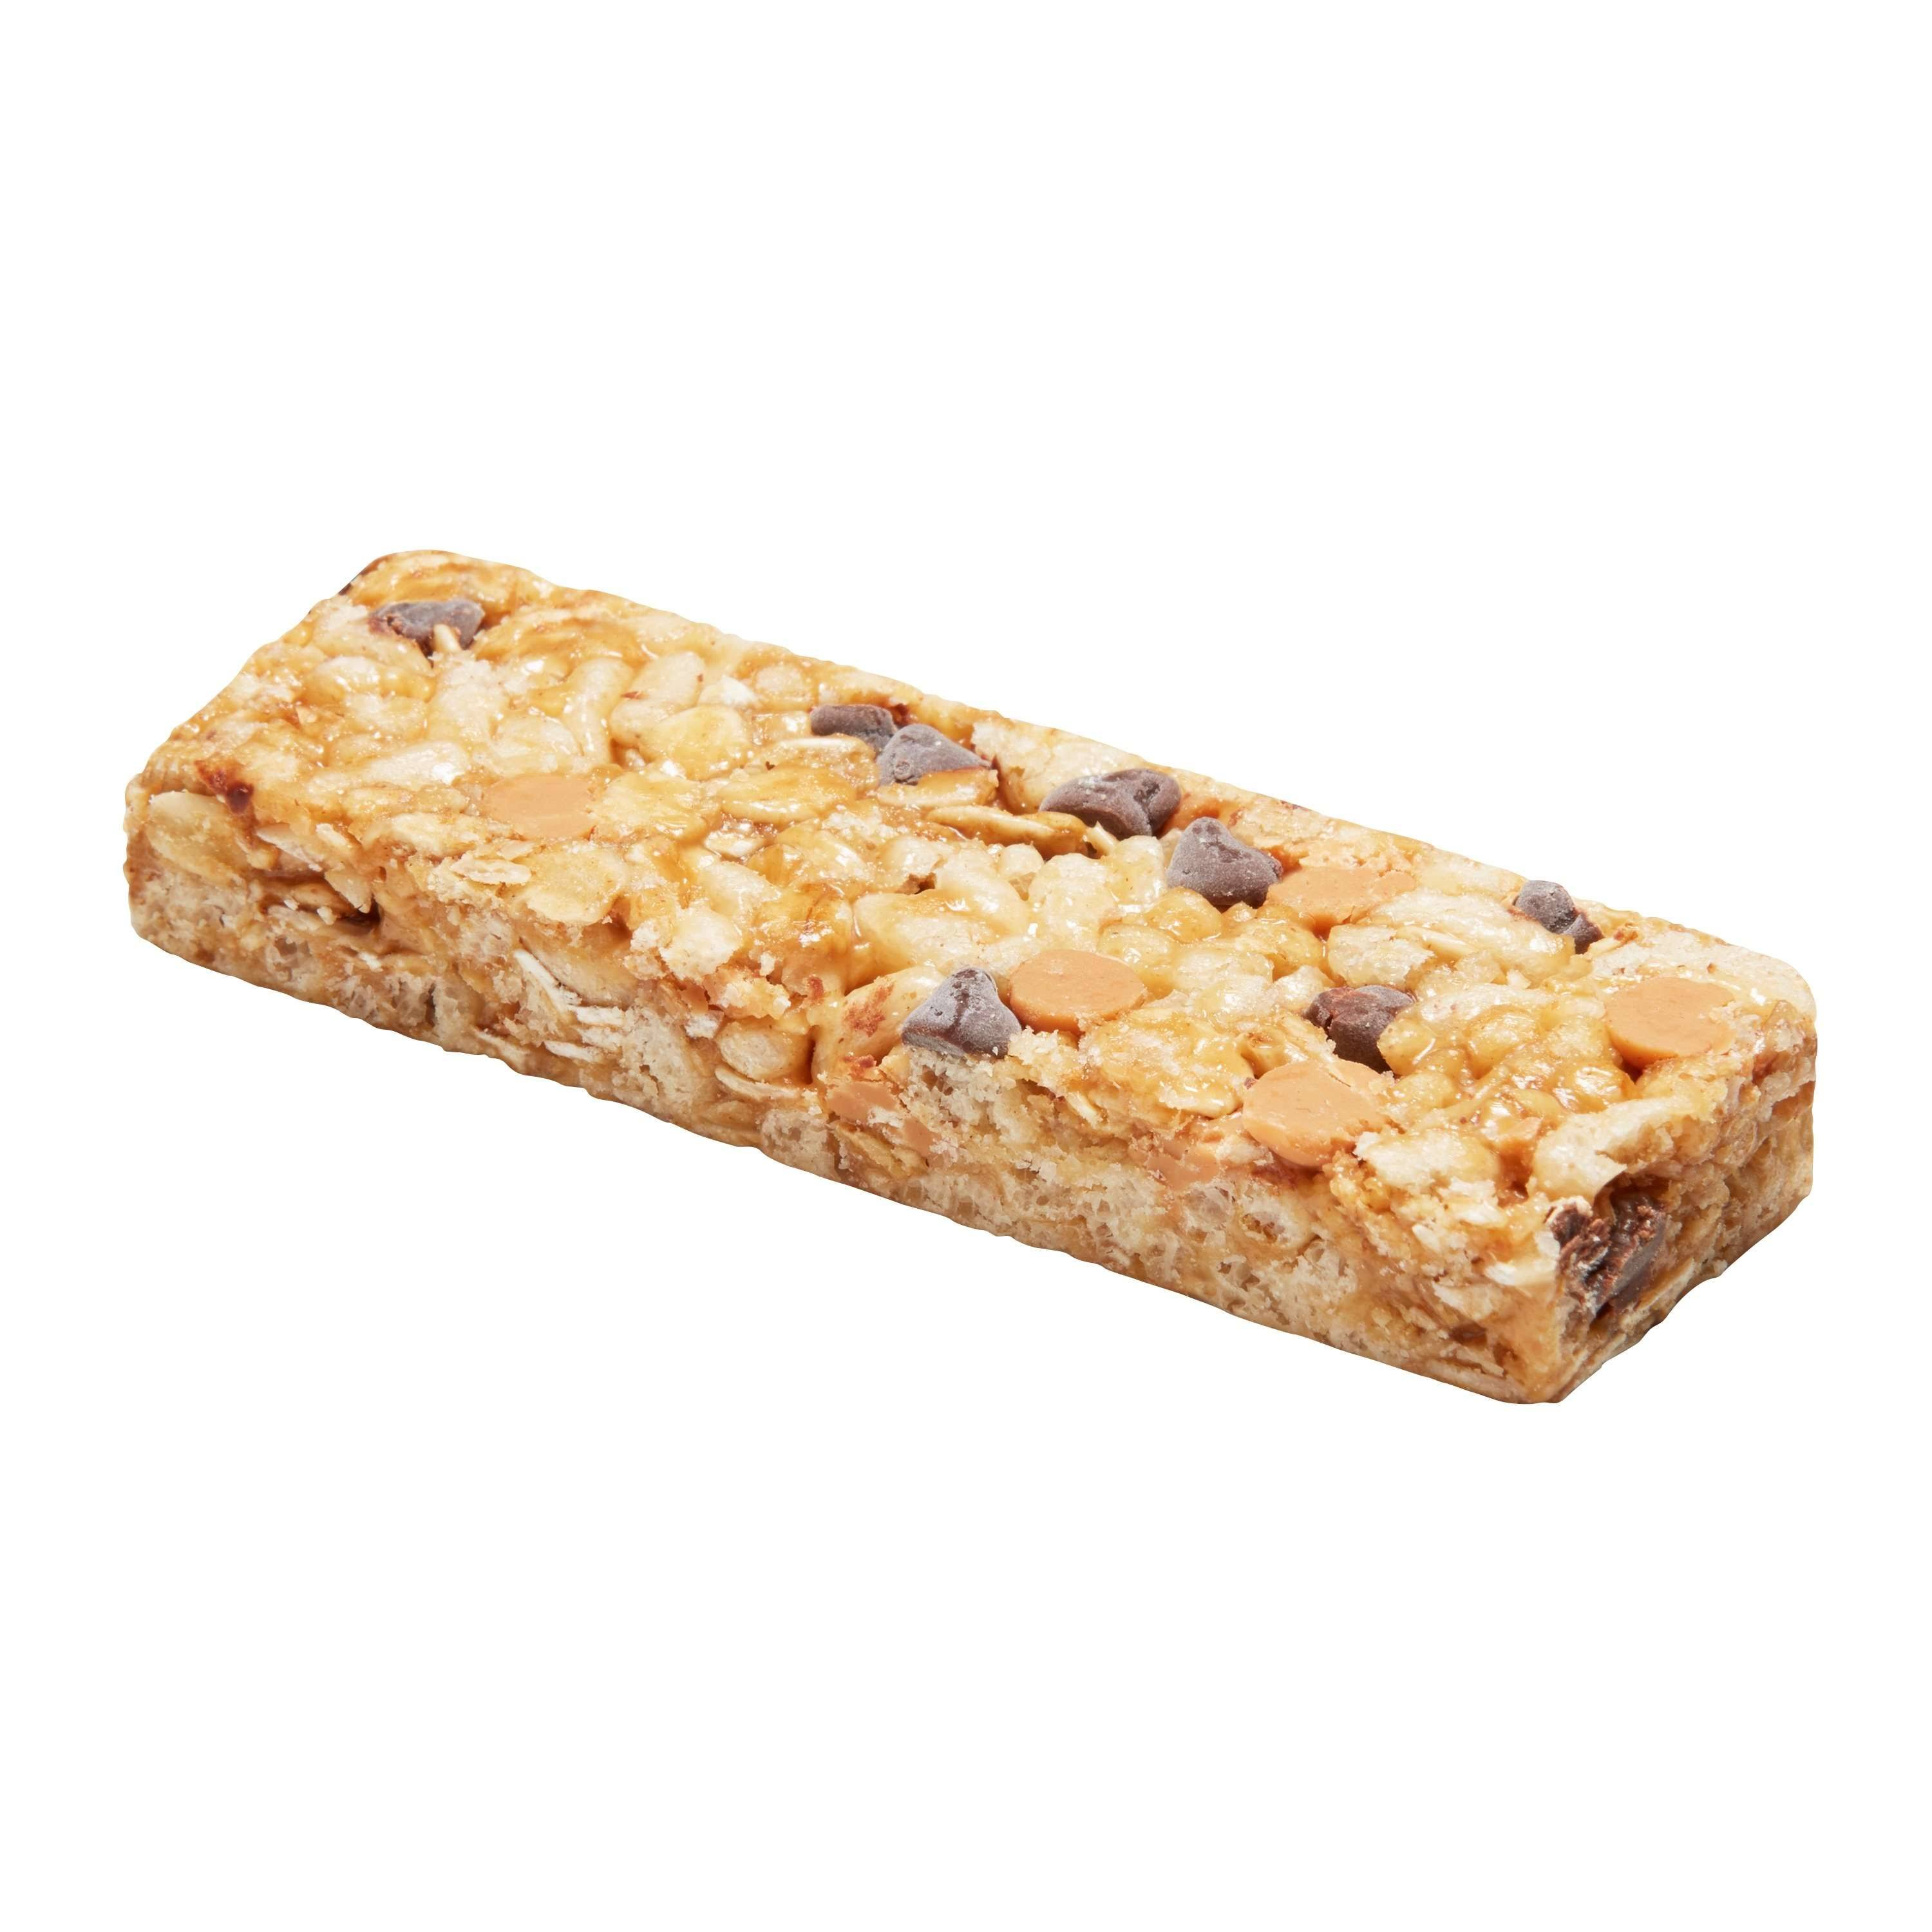 Quaker Oats 31184 Chewy Peanut Butter Chocolate Chunk Granola Bar - 6.7oz, 8pk